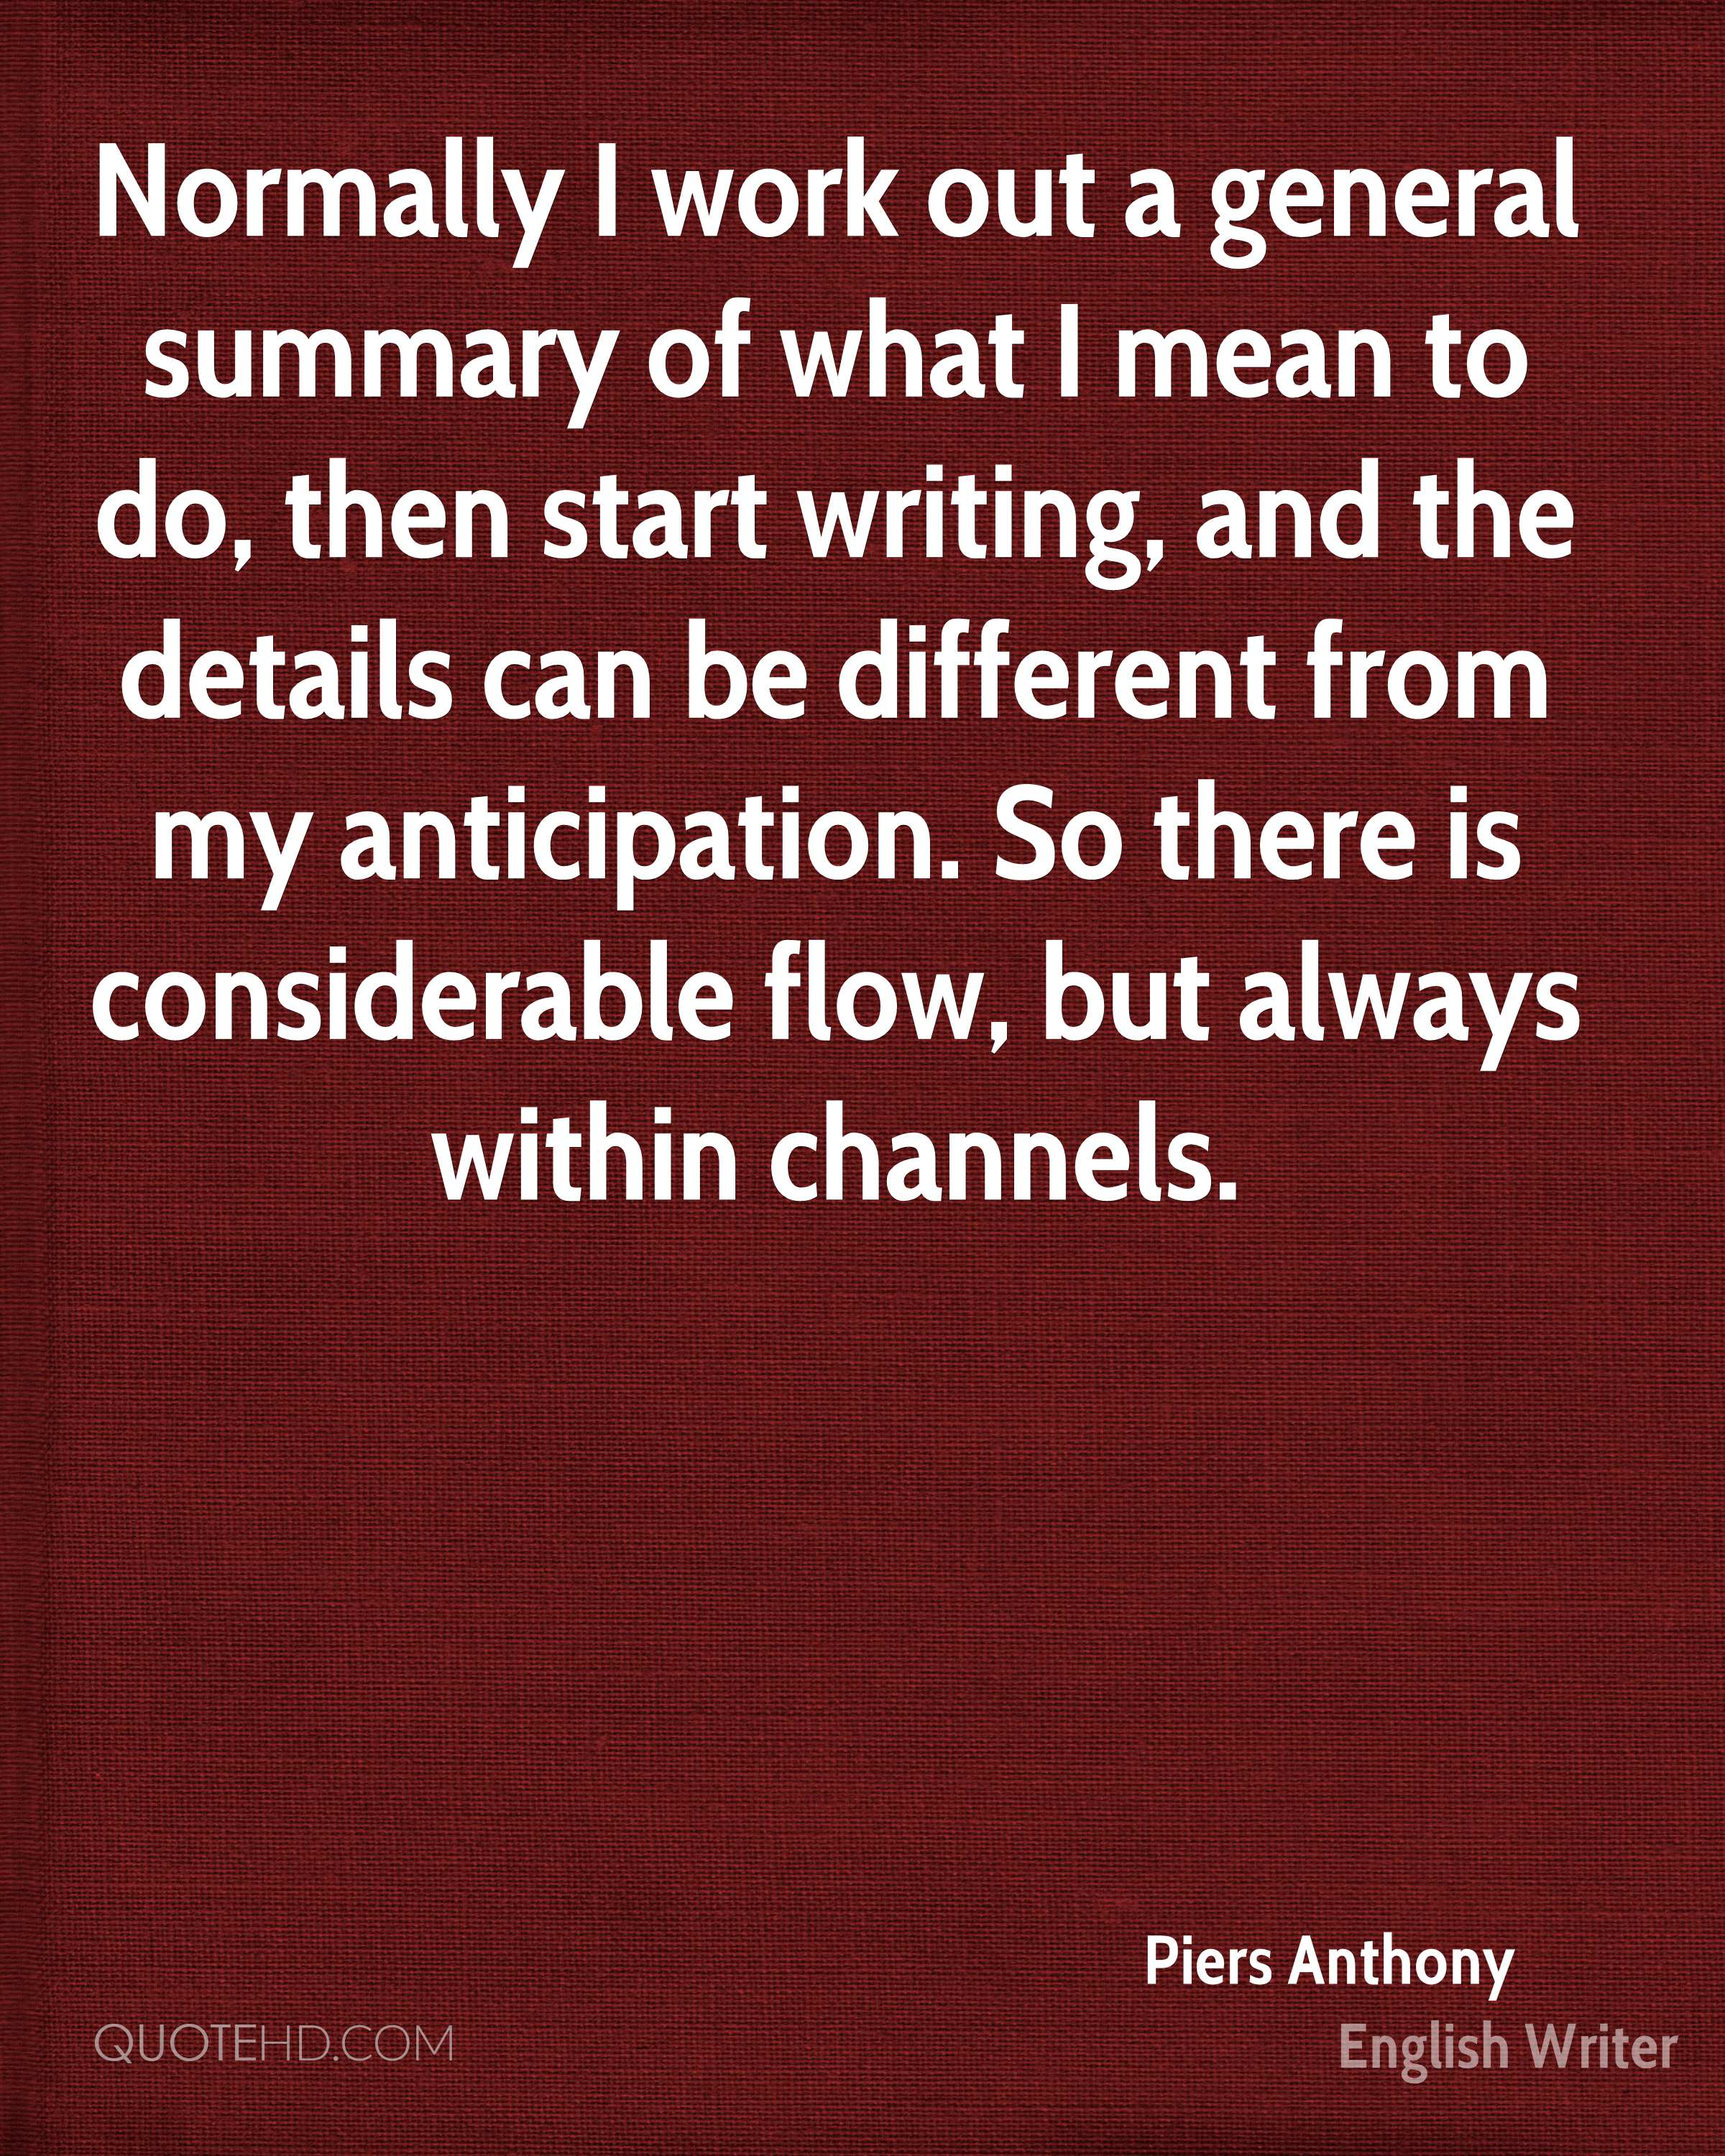 Normally I work out a general summary of what I mean to do, then start writing, and the details can be different from my anticipation. So there is considerable flow, but always within channels.